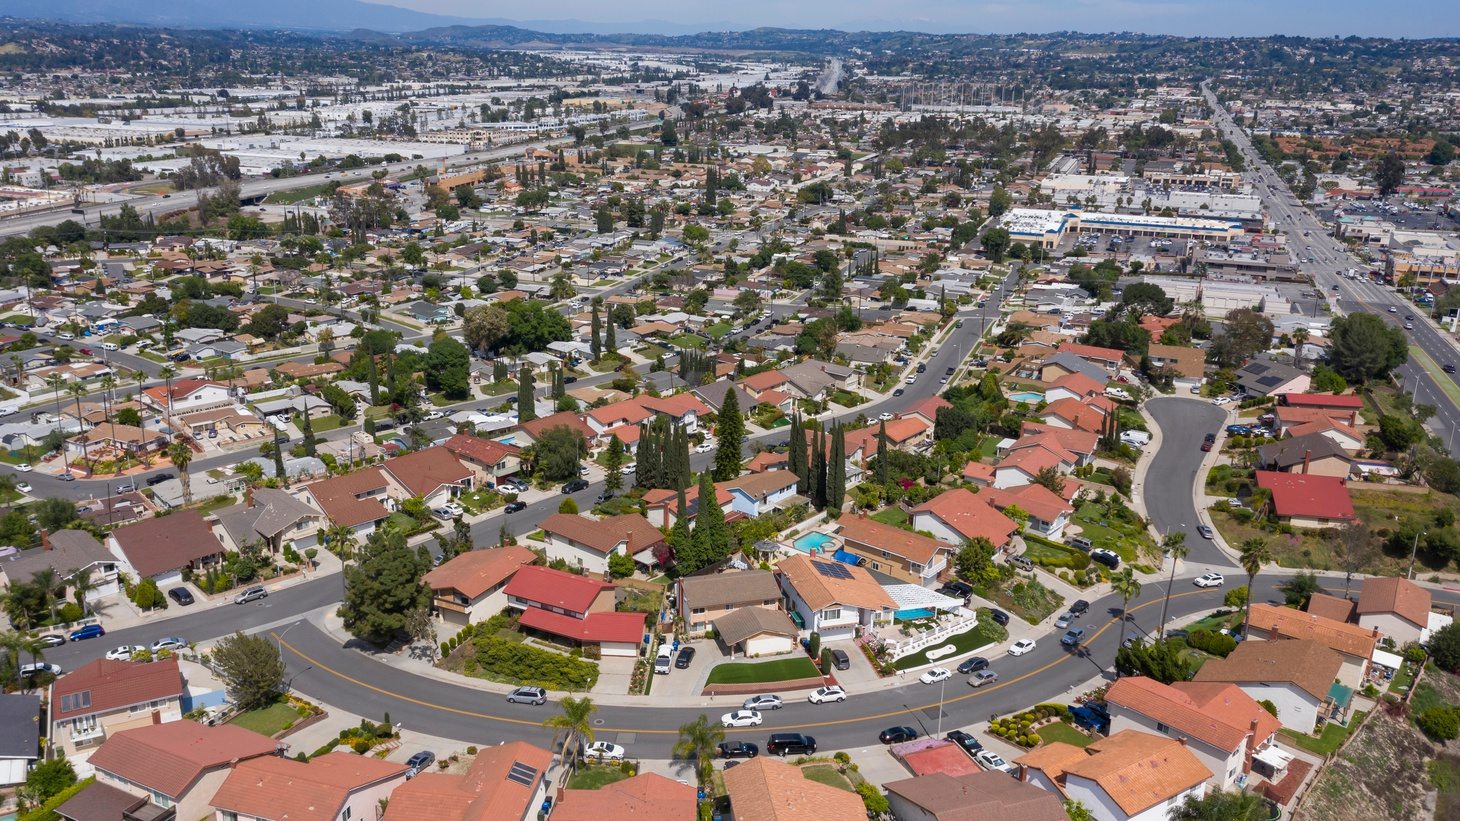 An aerial view shows homes in Rowland Heights, California.